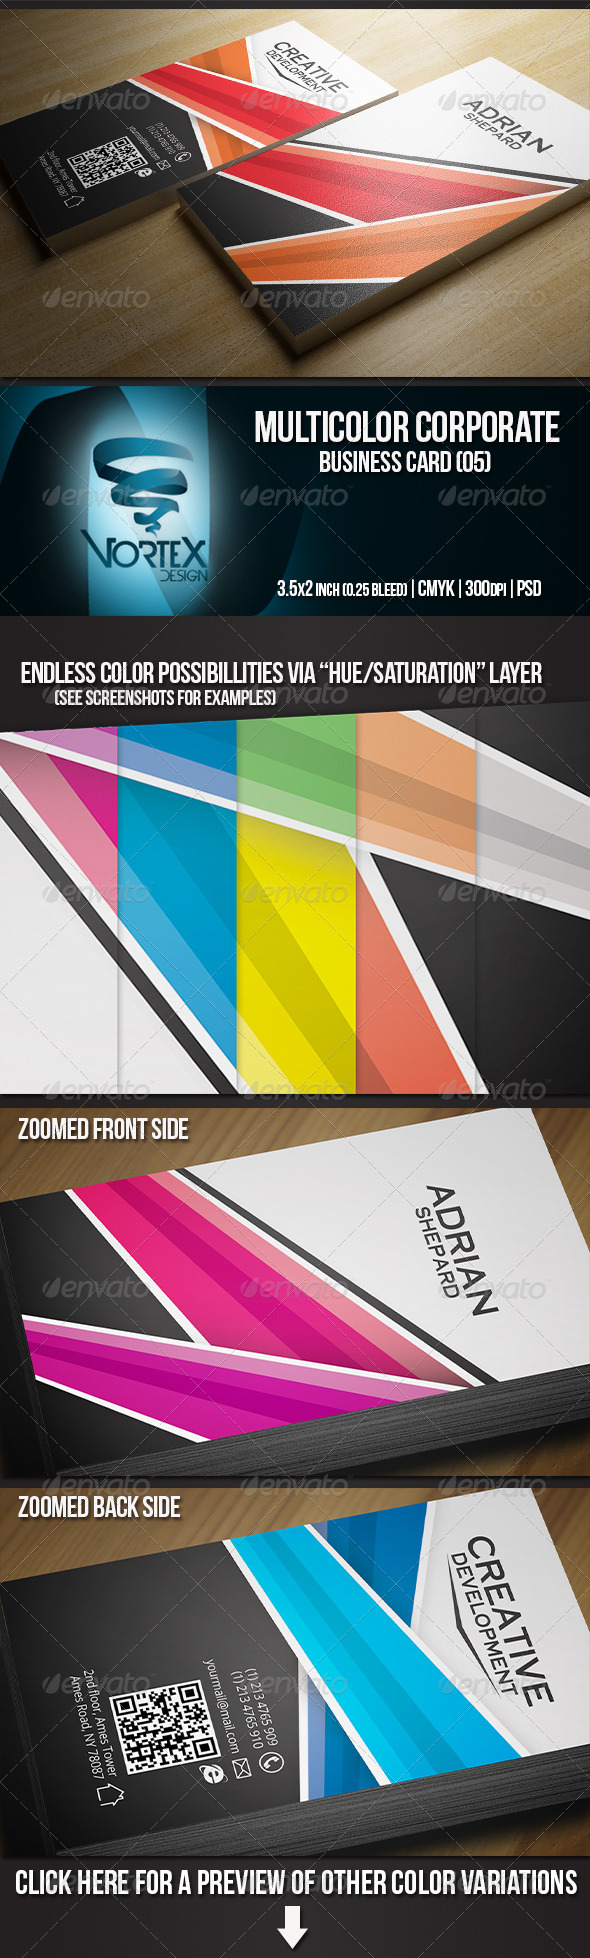 GraphicRiver Multicolor Corporate Business Card 05 5470475